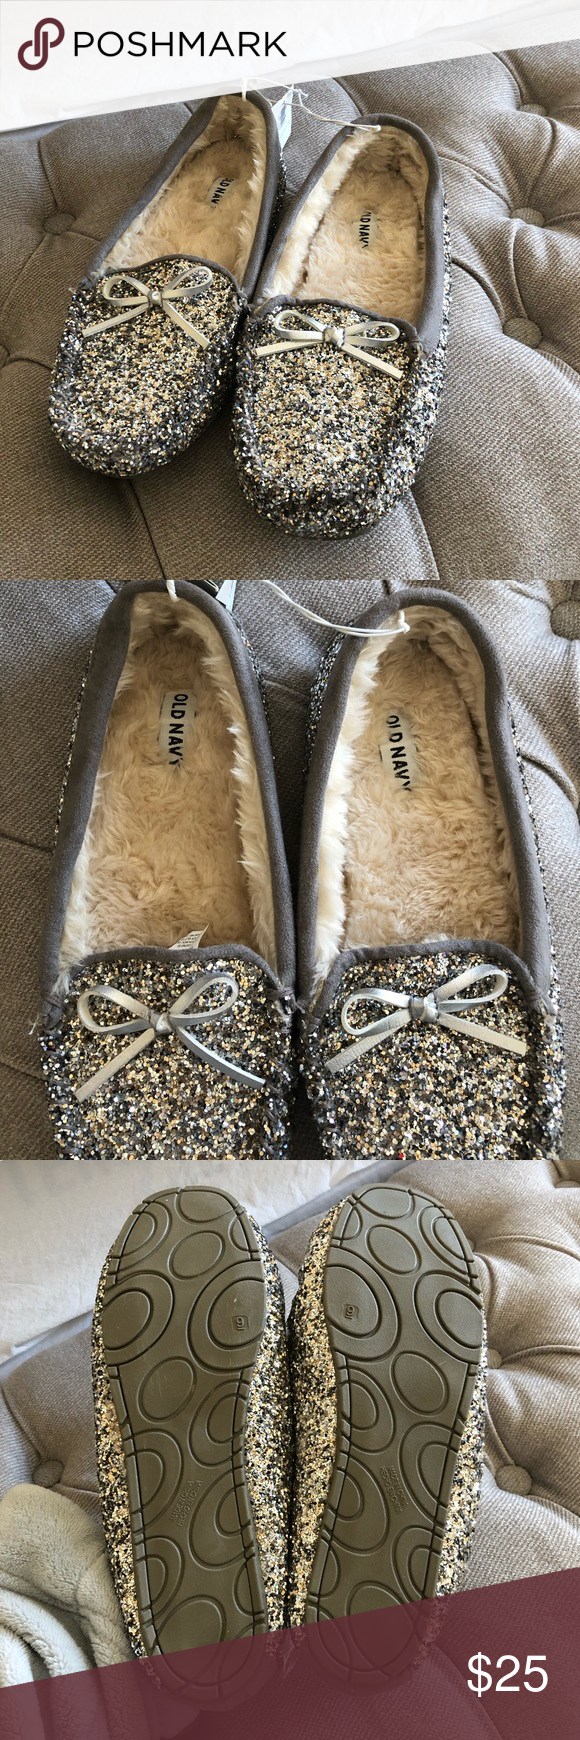 NWT! Old navy faux fur silver glitter